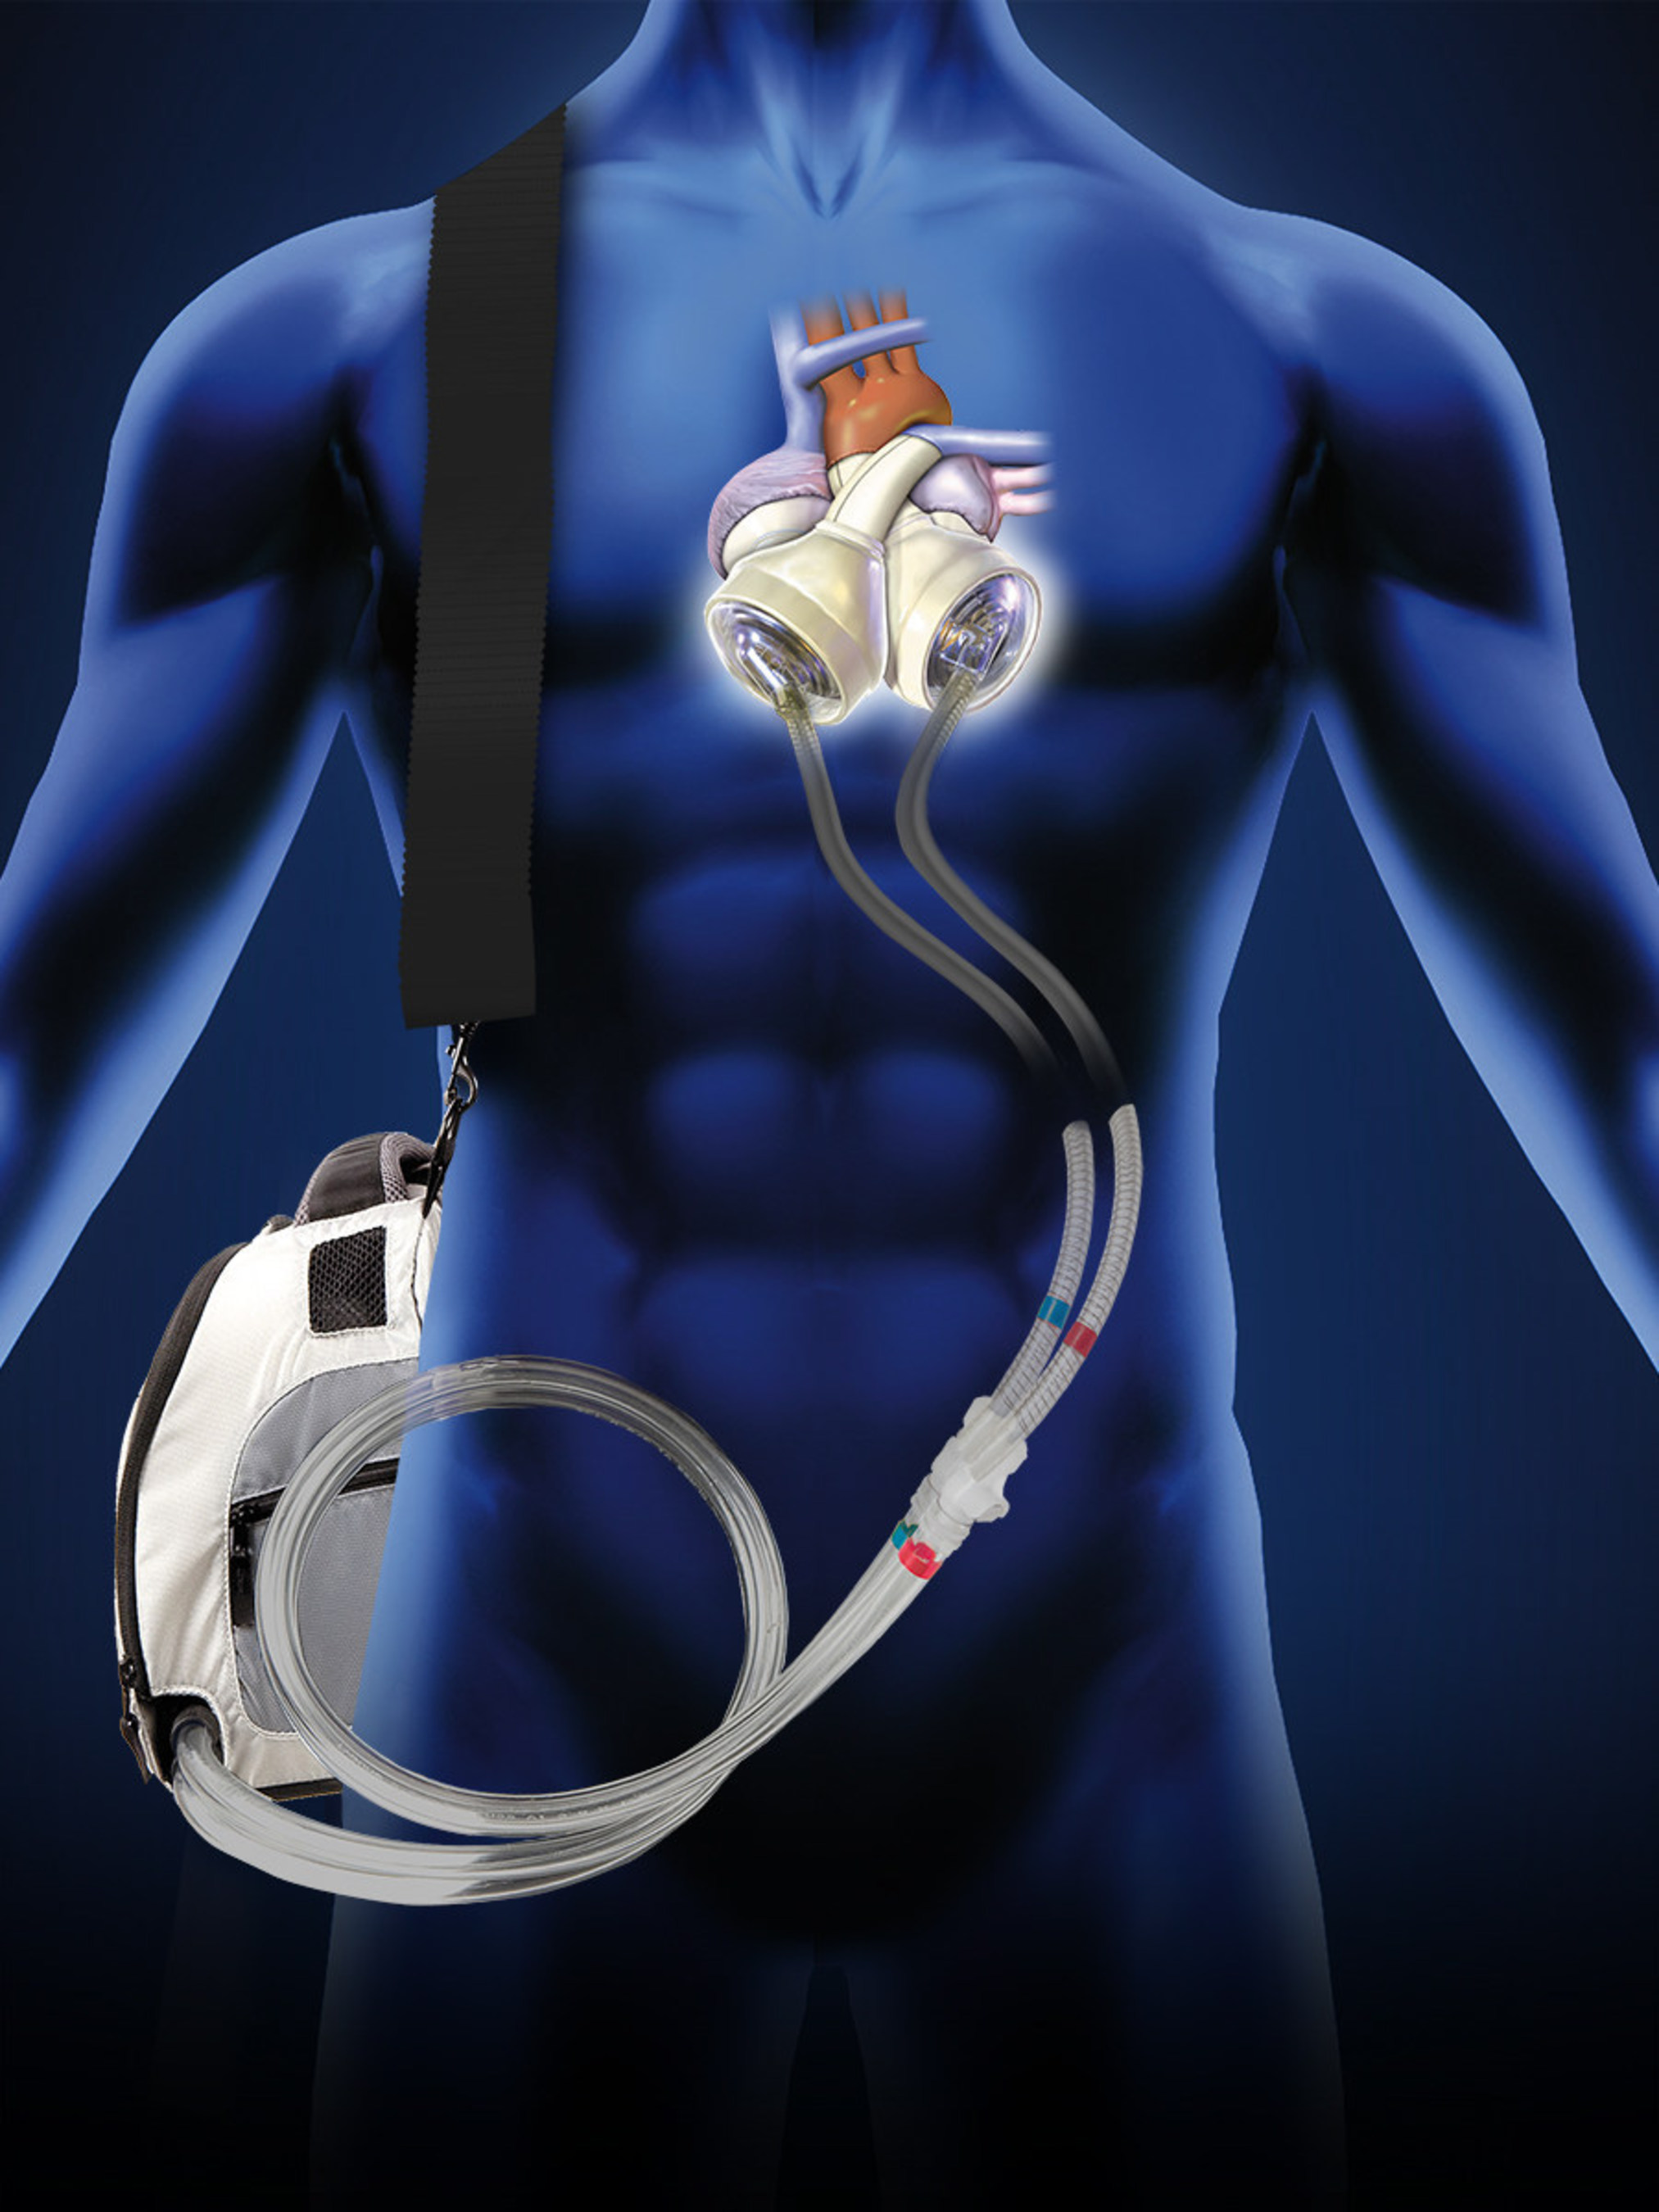 Brothers Stan and Dominique Larkin both received the SynCardia Total Artificial Heart to save them from life-threatening genetic heart disease. One is home with his donor heart; the other is home with his SynCardia Heart waiting for his donor heart.